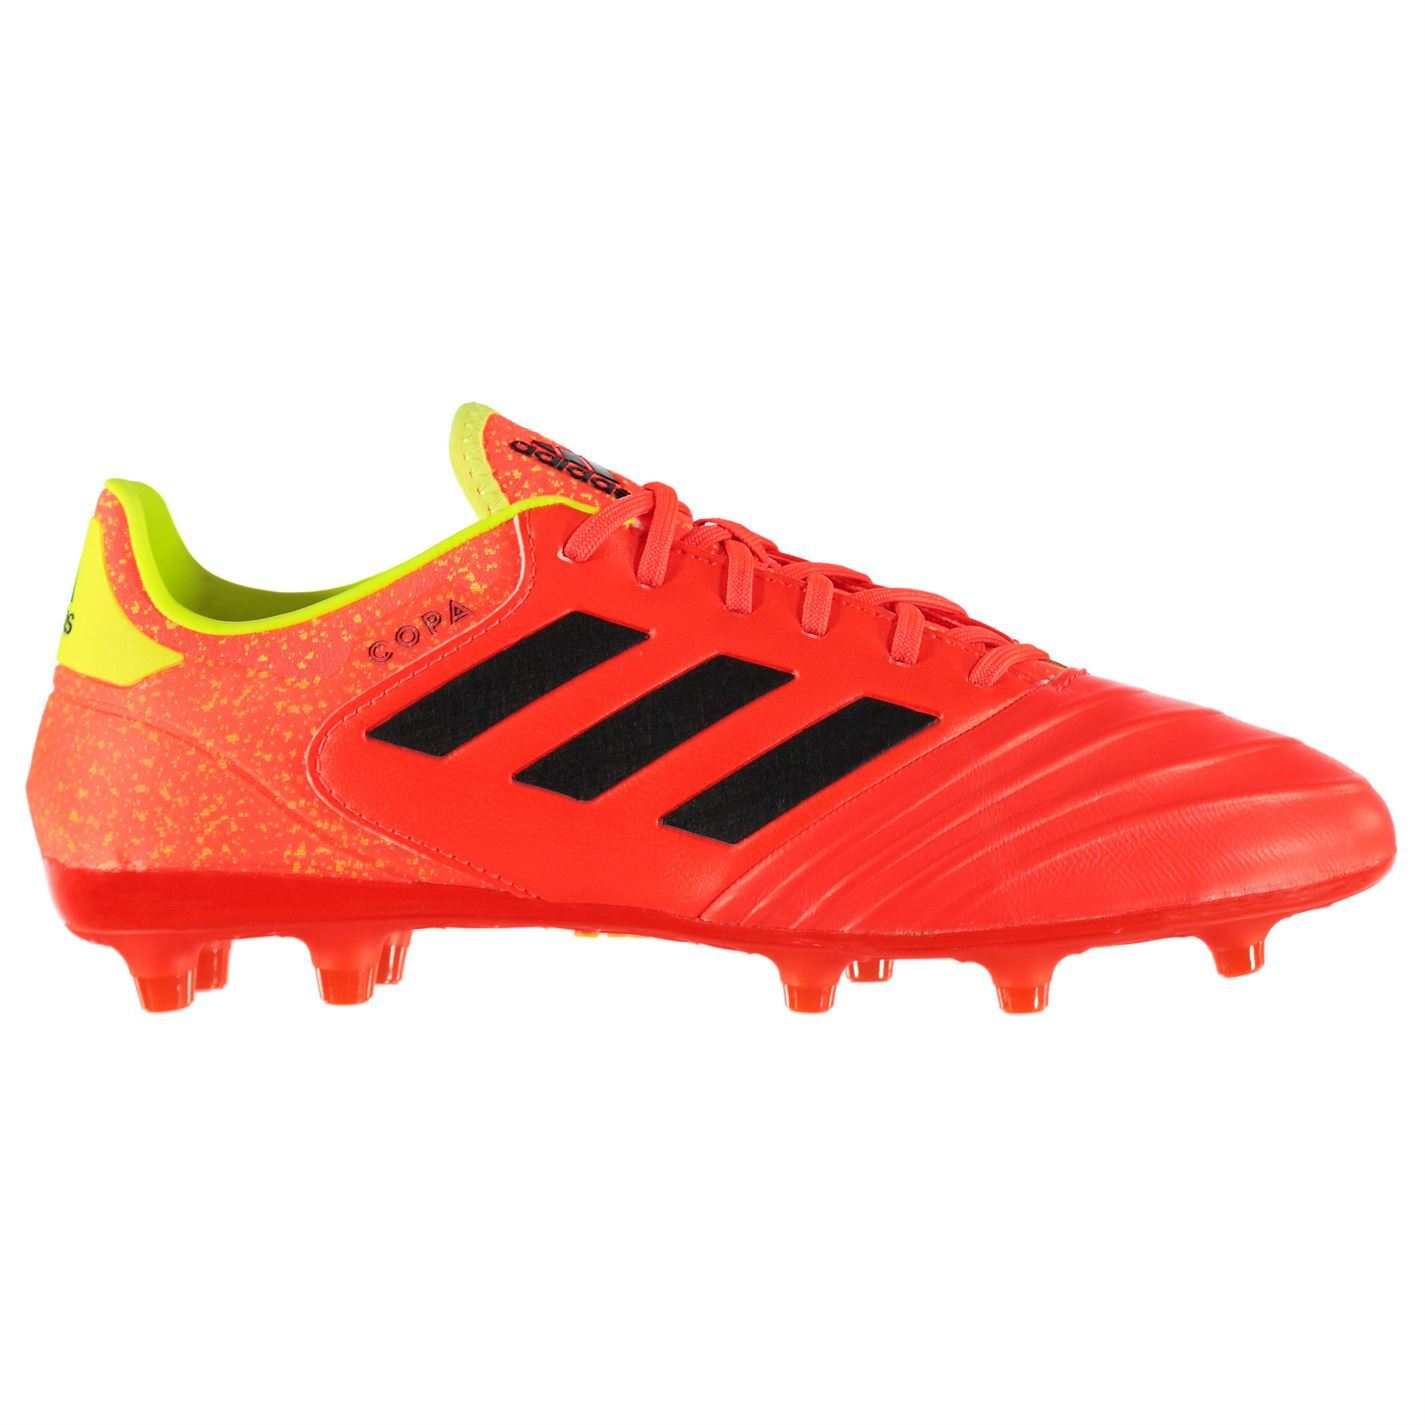 d4cf9ff77532 ... adidas Copa 18.2 FG Firm Ground Football Boots Mens Red Black Soccer  Shoe Cleats ...